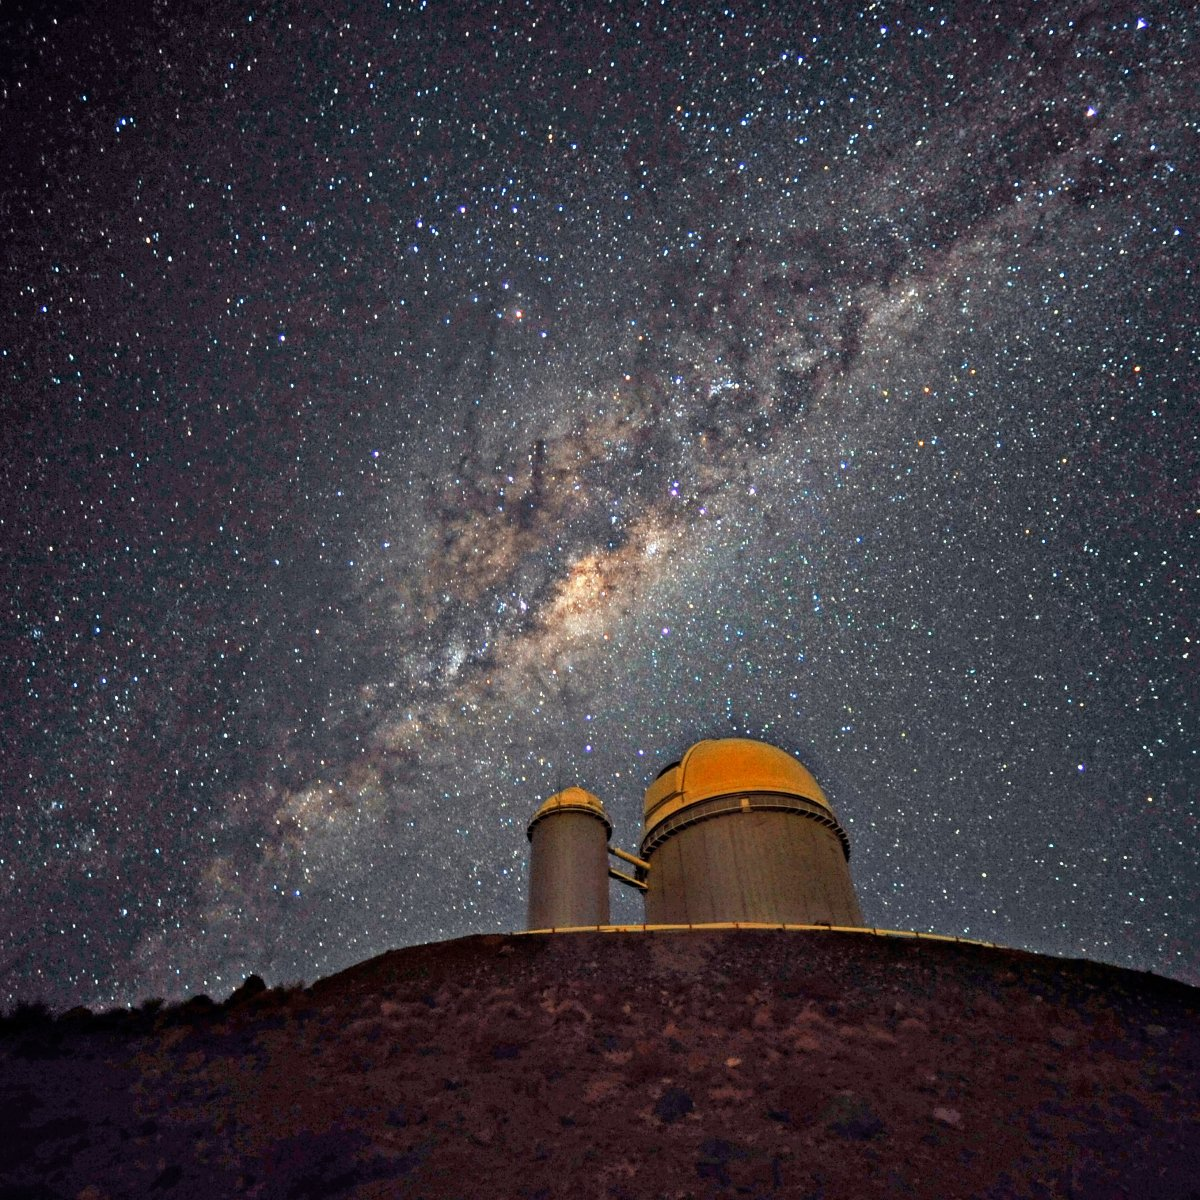 CC BY 4.0: https://commons.wikimedia.org/wiki/File:The_Galactic_Centre_above_the_ESO_3.6-metre_telescope.jpg